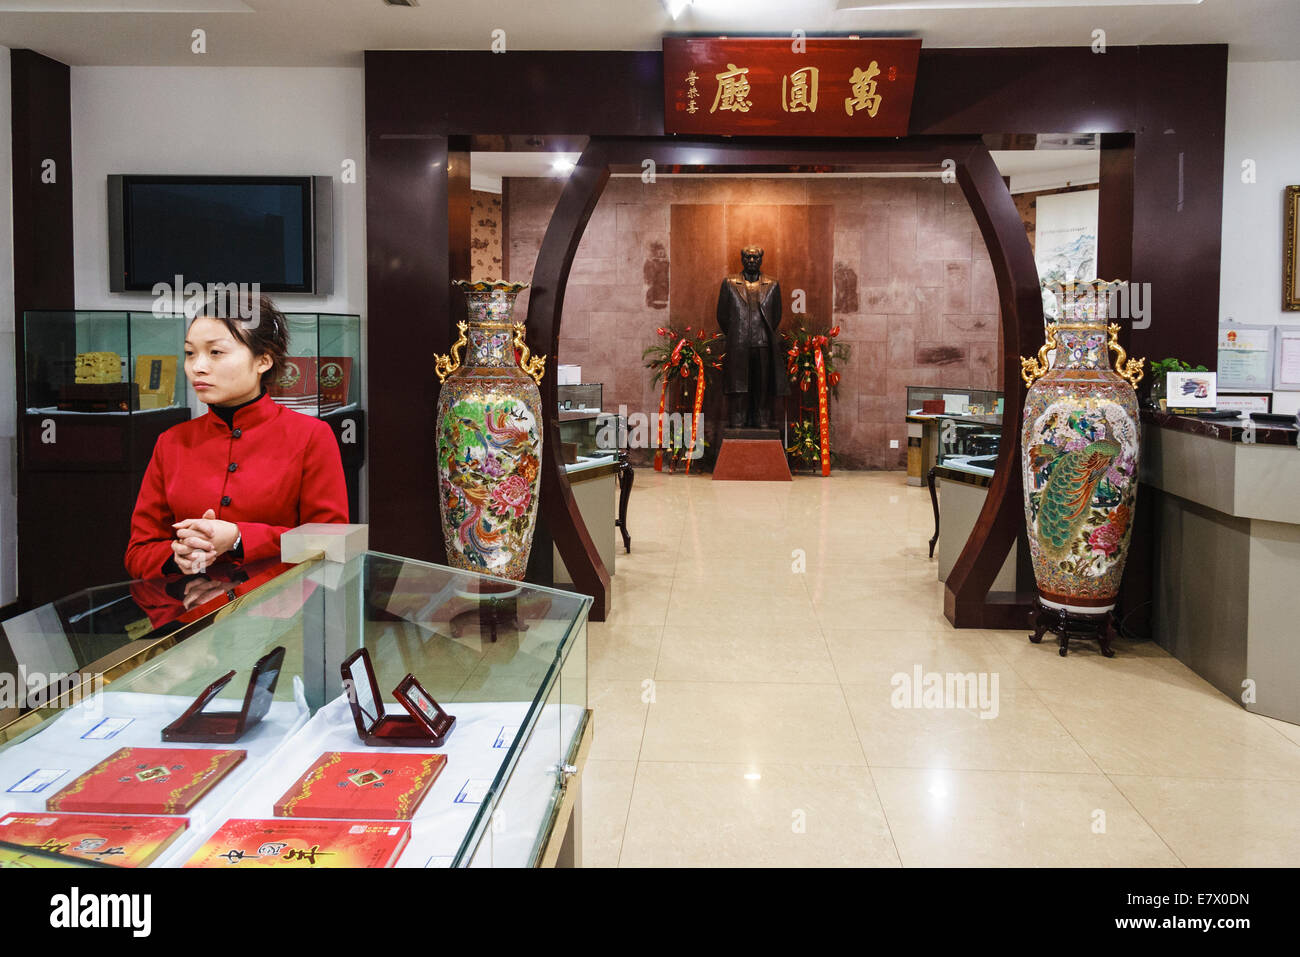 Uniformed vendor woman at a luxurious Mao Zedong memorabilia shop with Mao life sized statue in Chengdu, Sichuan, - Stock Image